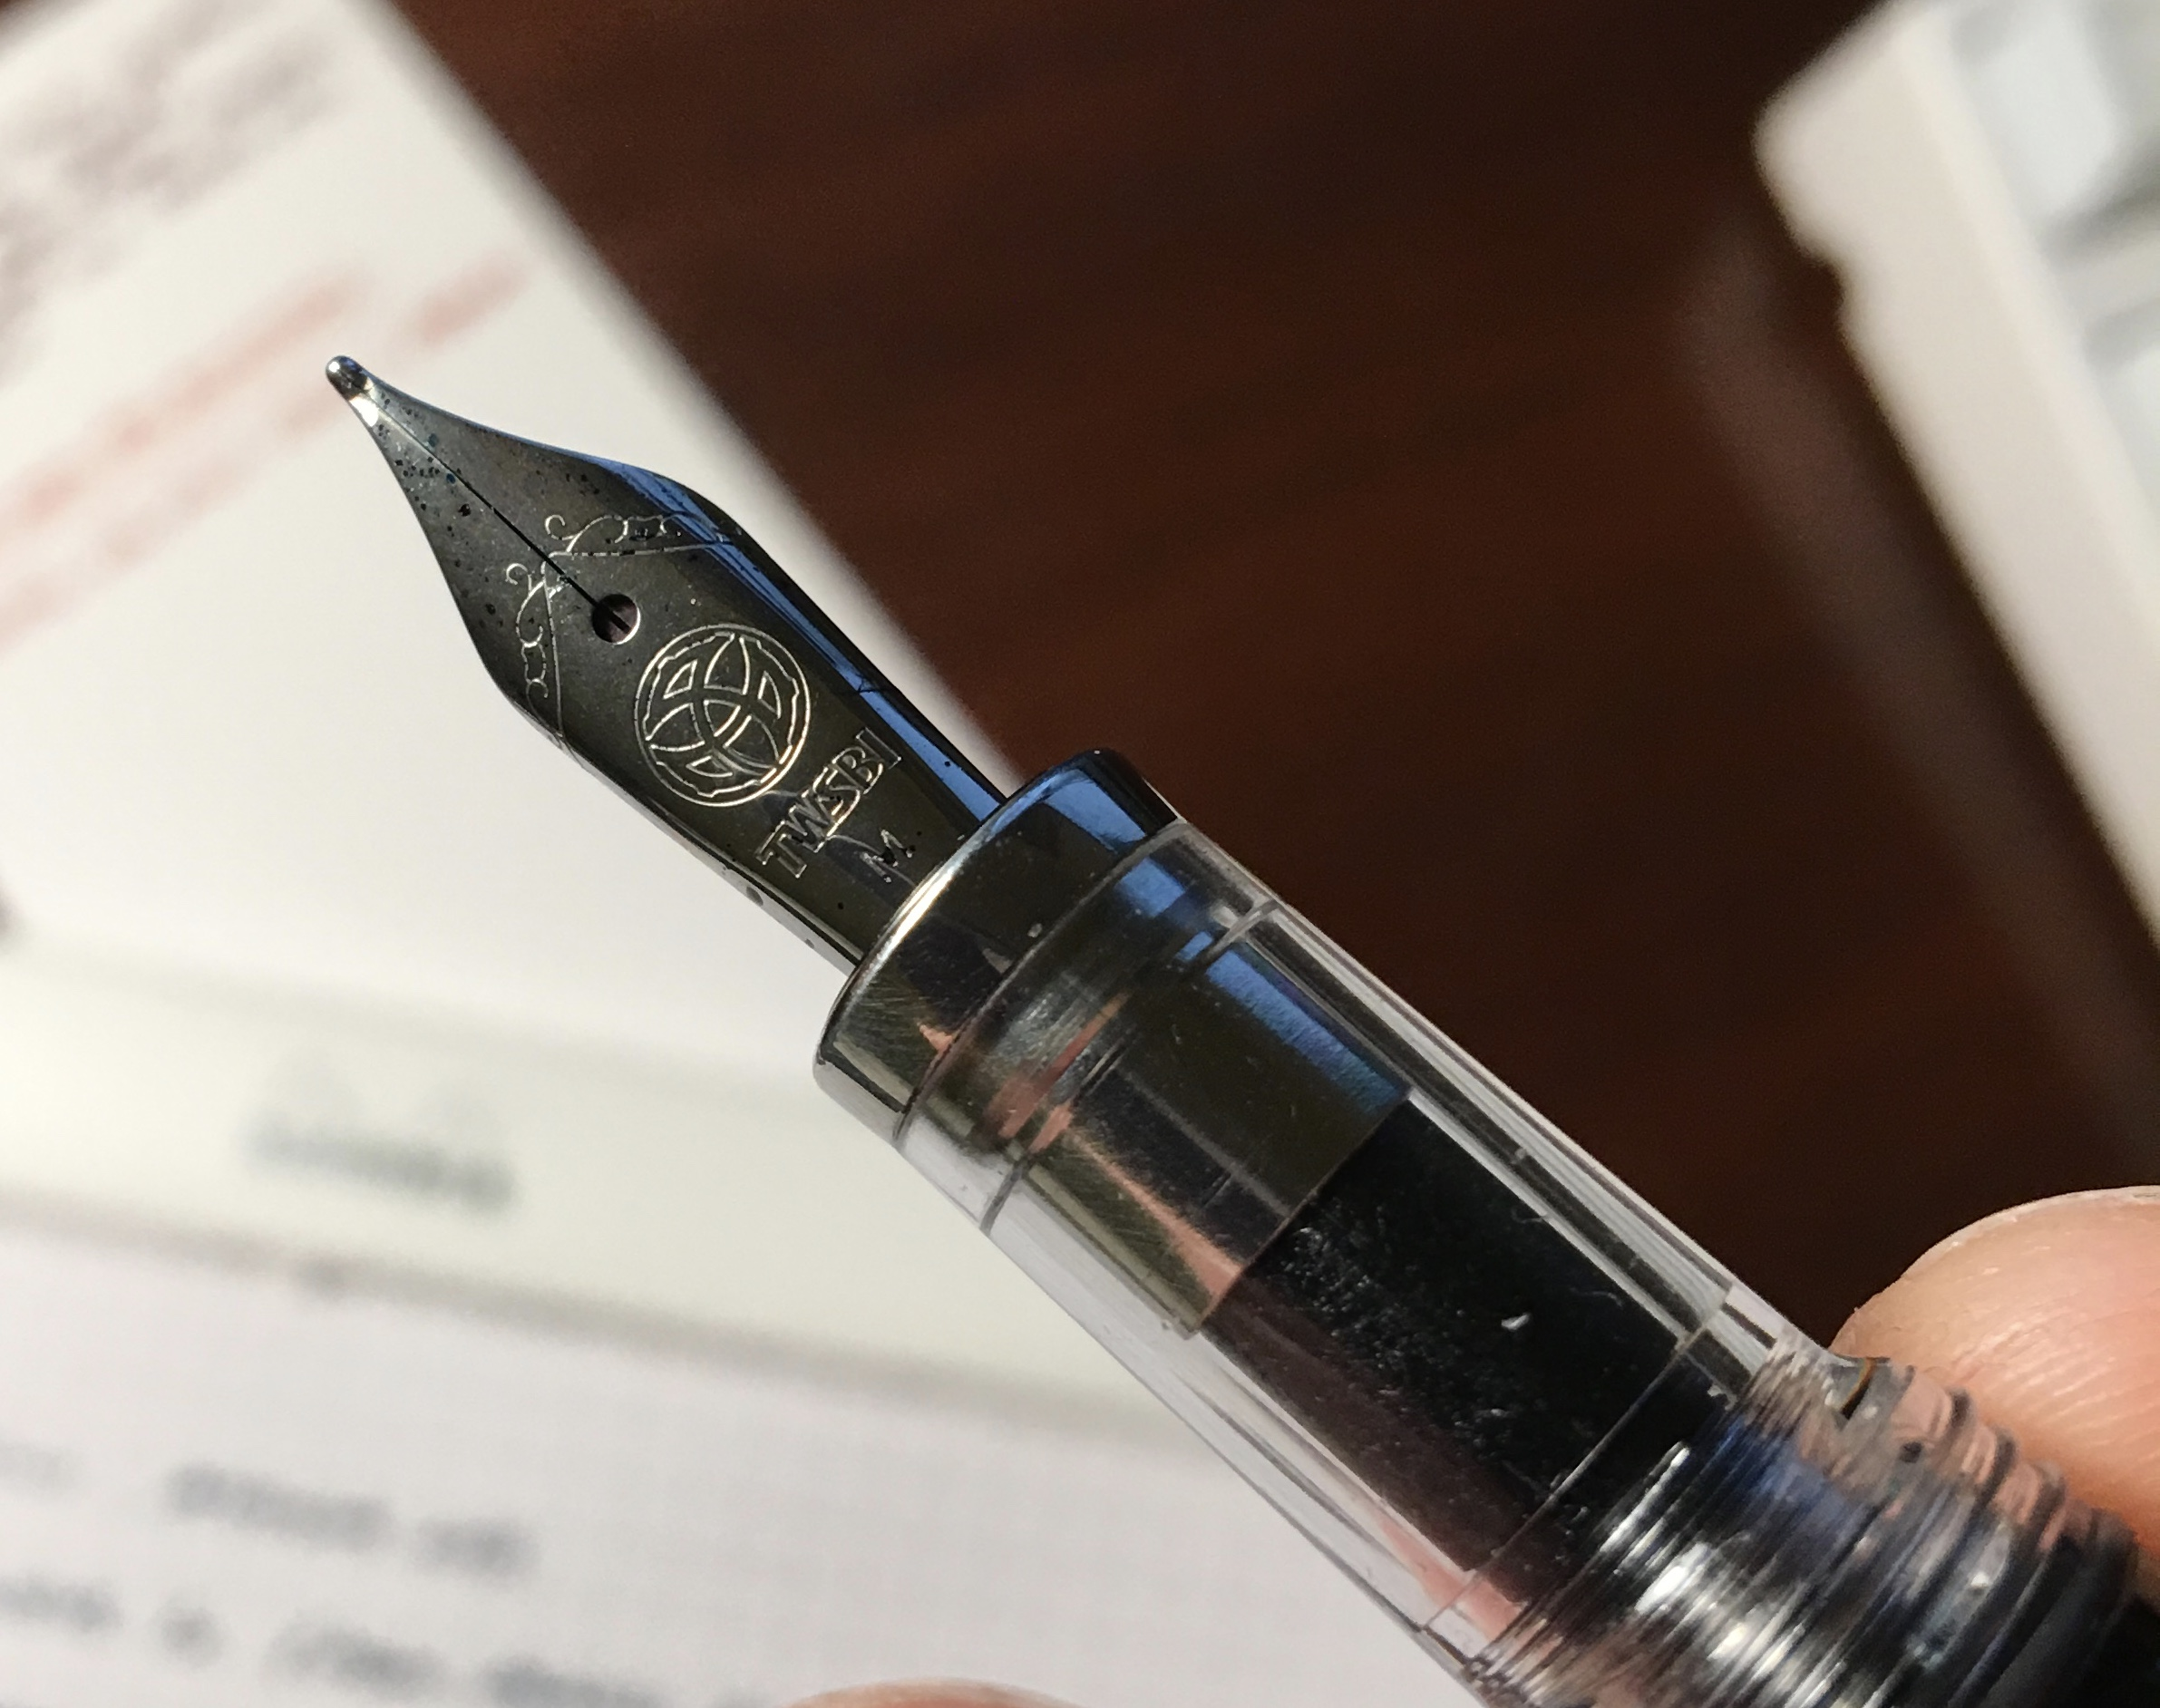 I've always liked TWSBI's nibs (now made by JoWo), and their logo engraved on the front. Unfortunately, I don't believe the Vac Mini nib units are interchangeable.